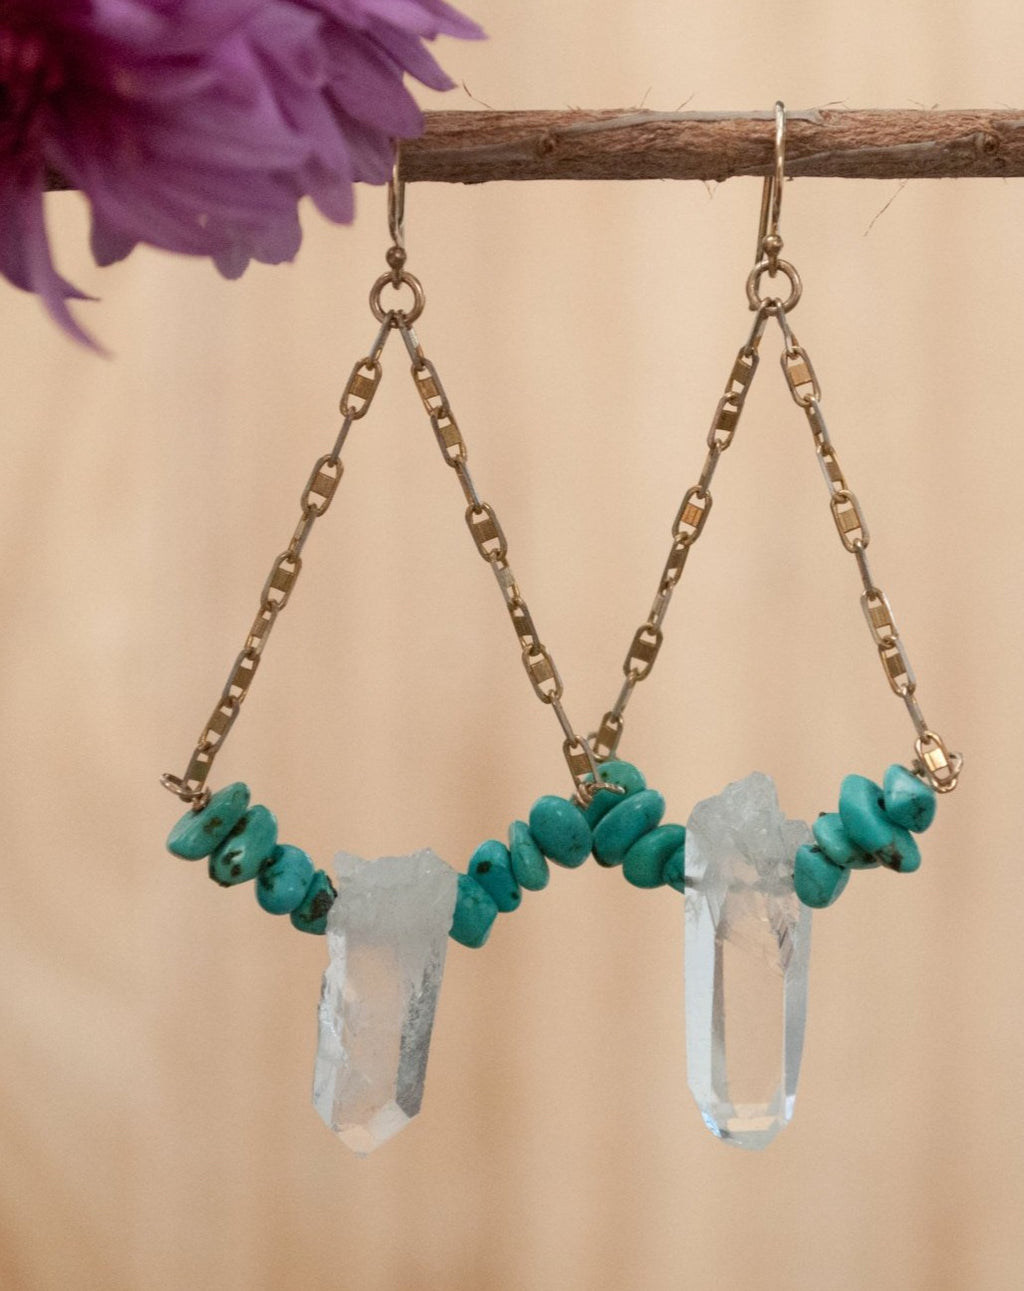 Melissa Earrings * Crystal Quartz and Turquoise * Gold Vermeil and Sterling Silver 925 * BJE146